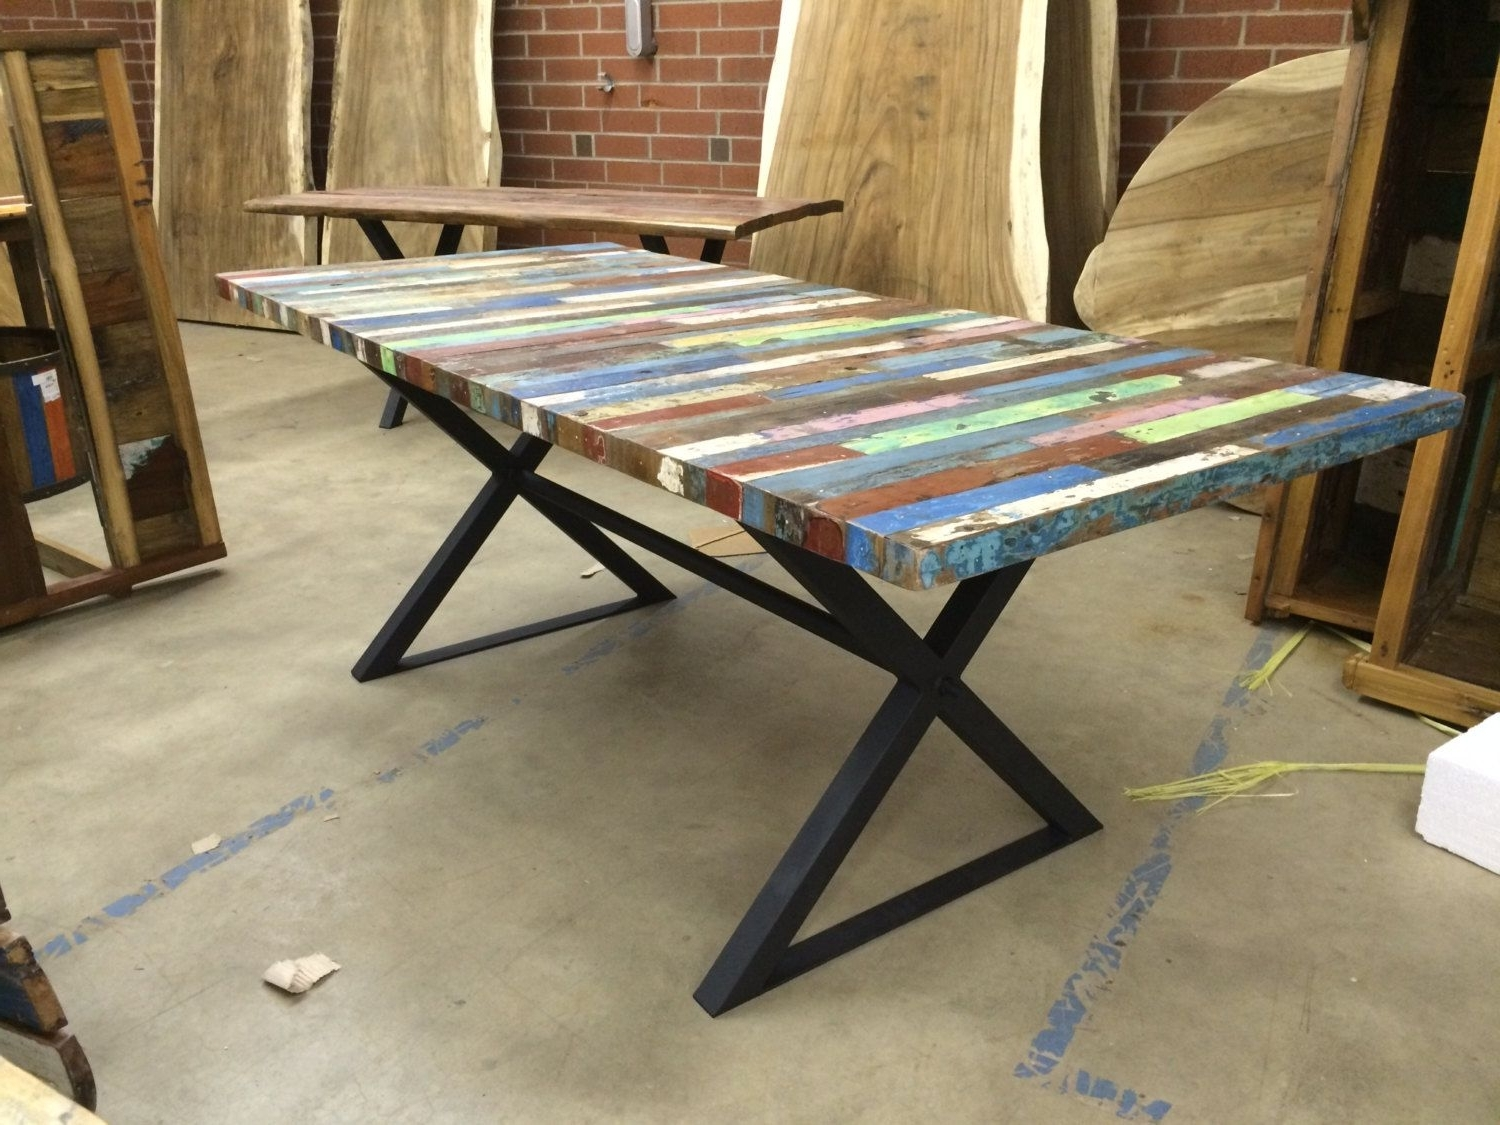 Buy A Handmade Reclaimed Dining Table, Bali Boat Wood Table, Custom Regarding Recent Balinese Dining Tables (View 9 of 25)